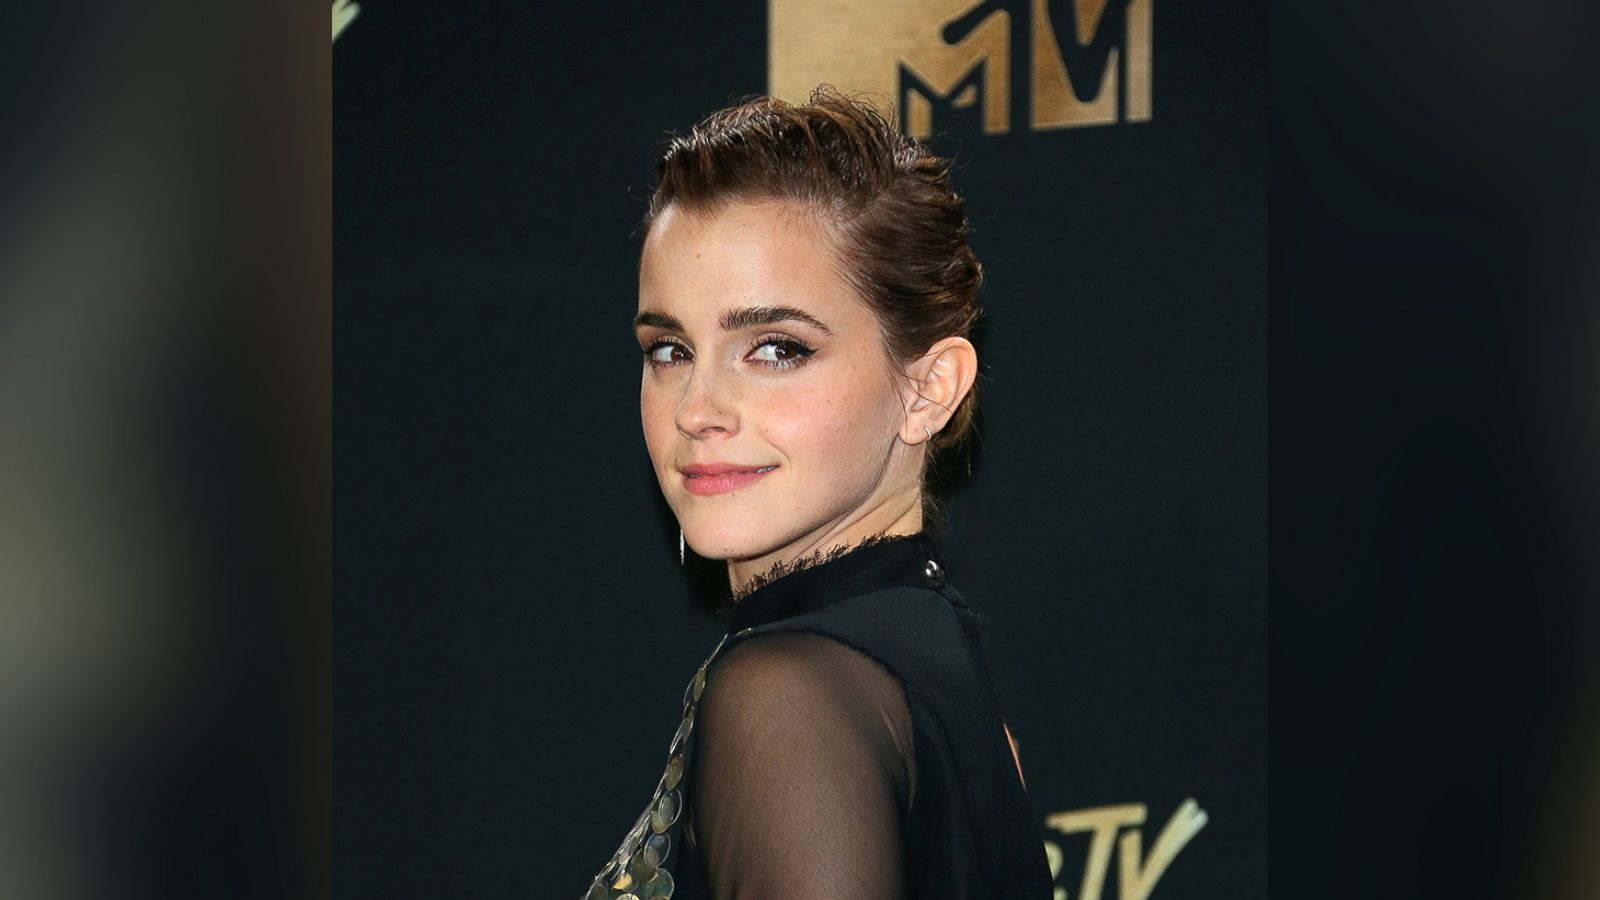 emma watson accepts mtv award, says acting does not 'need to be